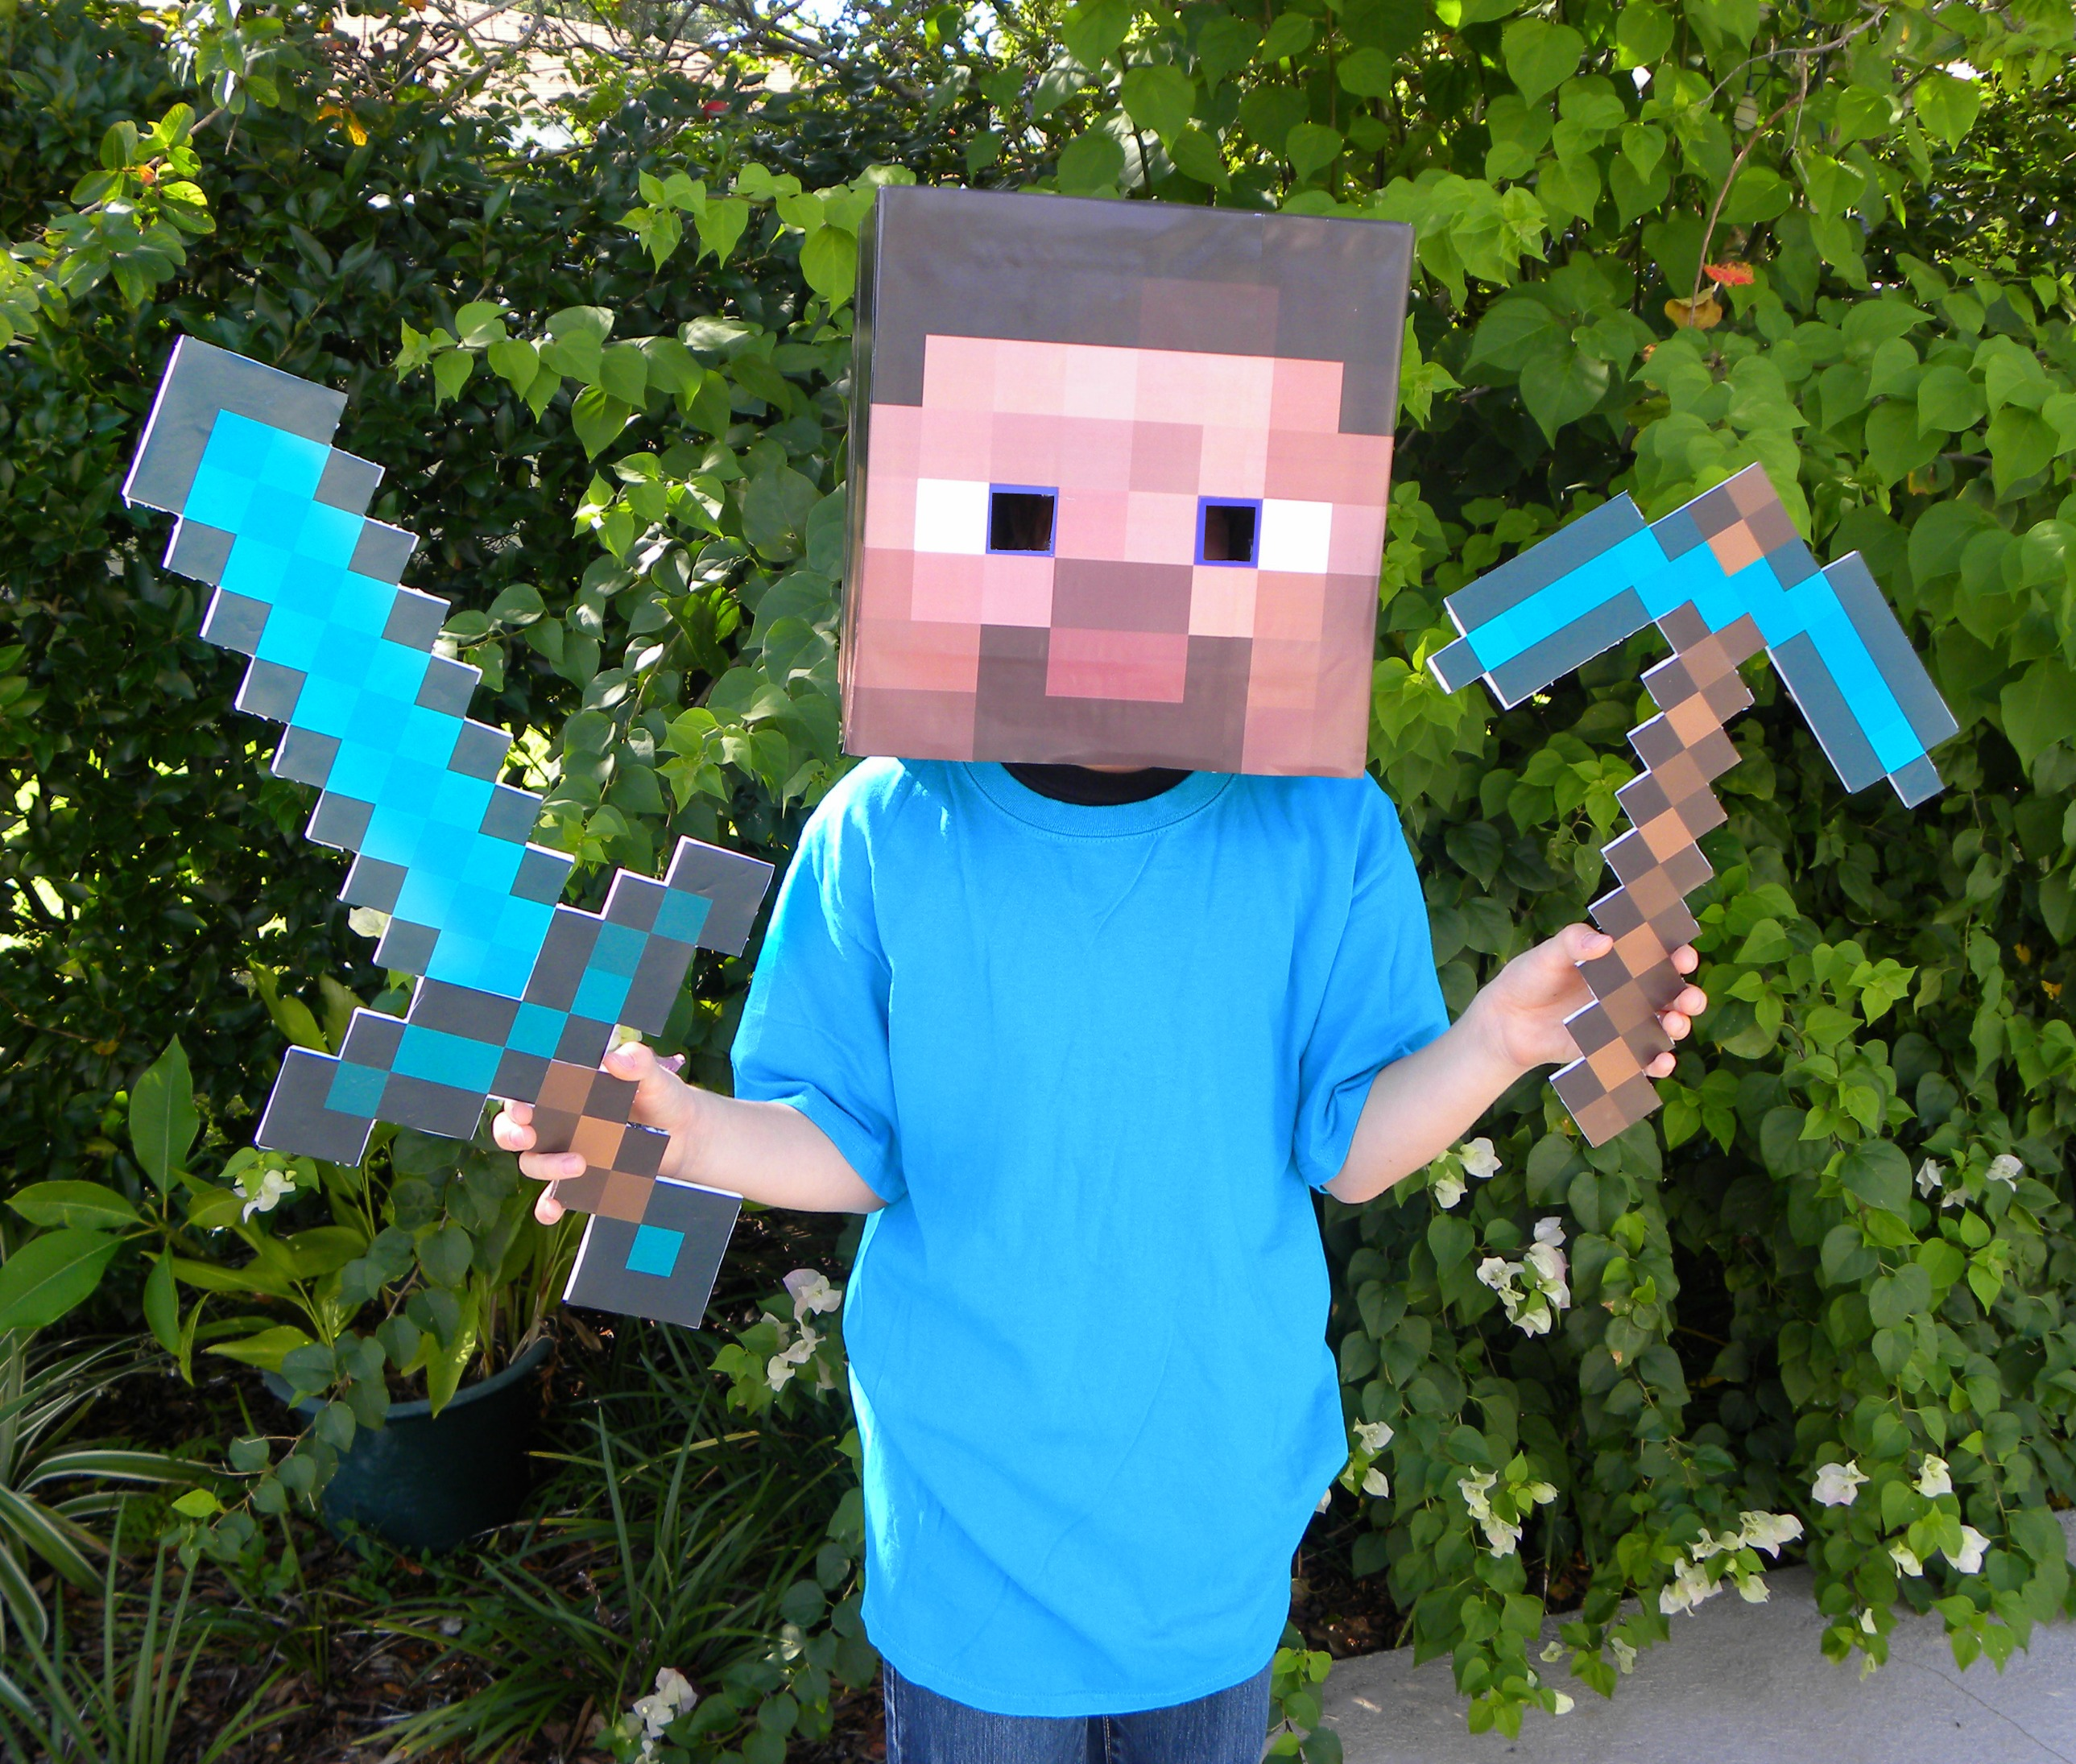 Minecraft Party Diamond Sword